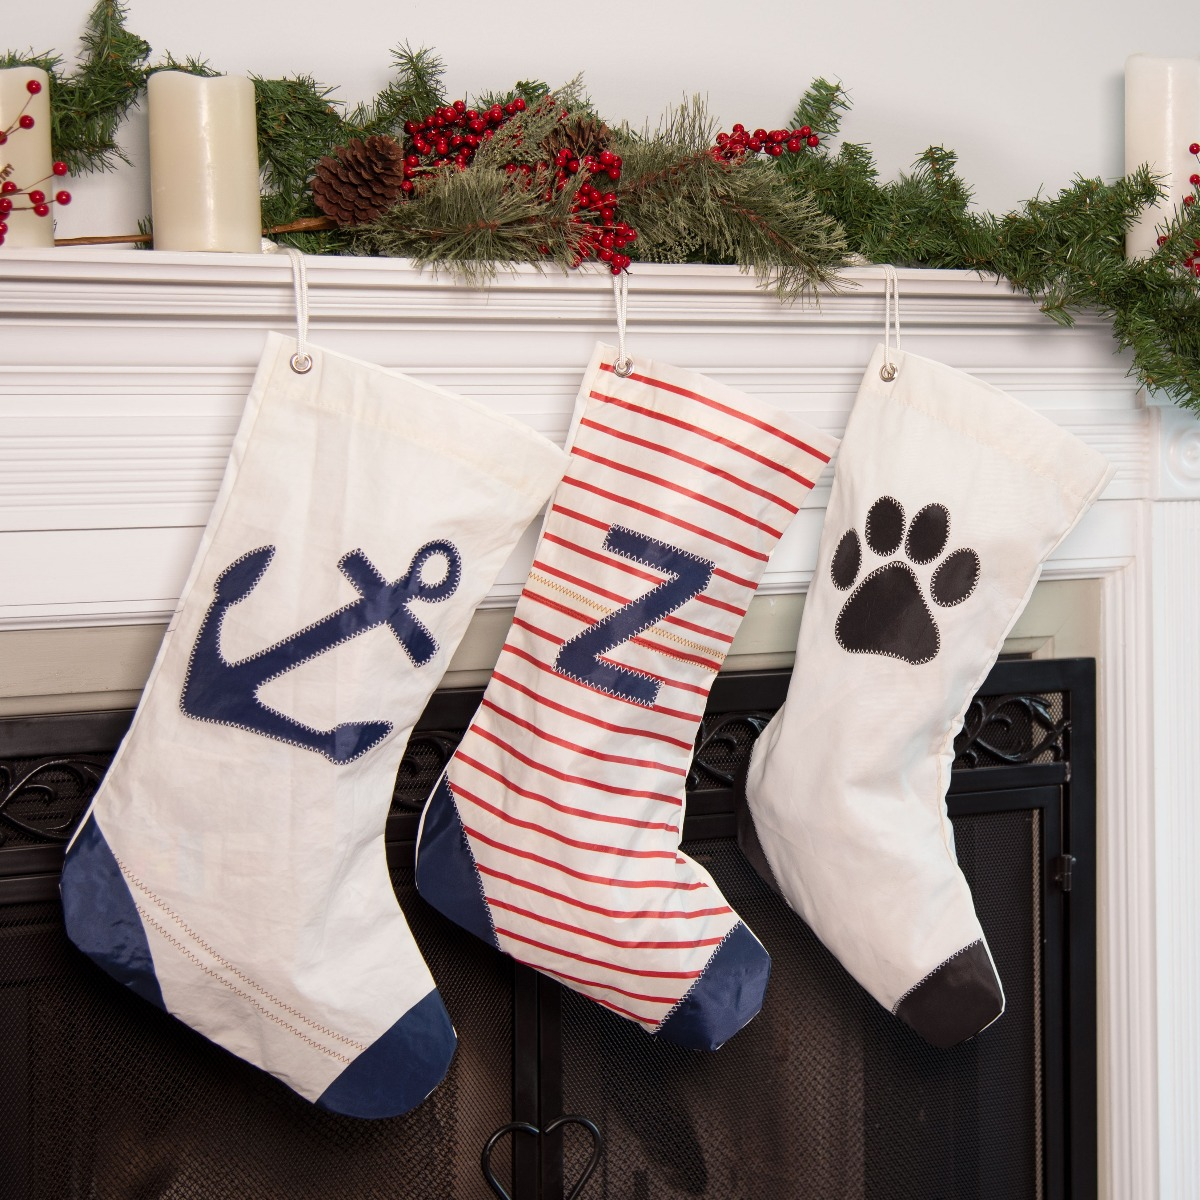 sustainable sail cloth stockings hanging from mantel